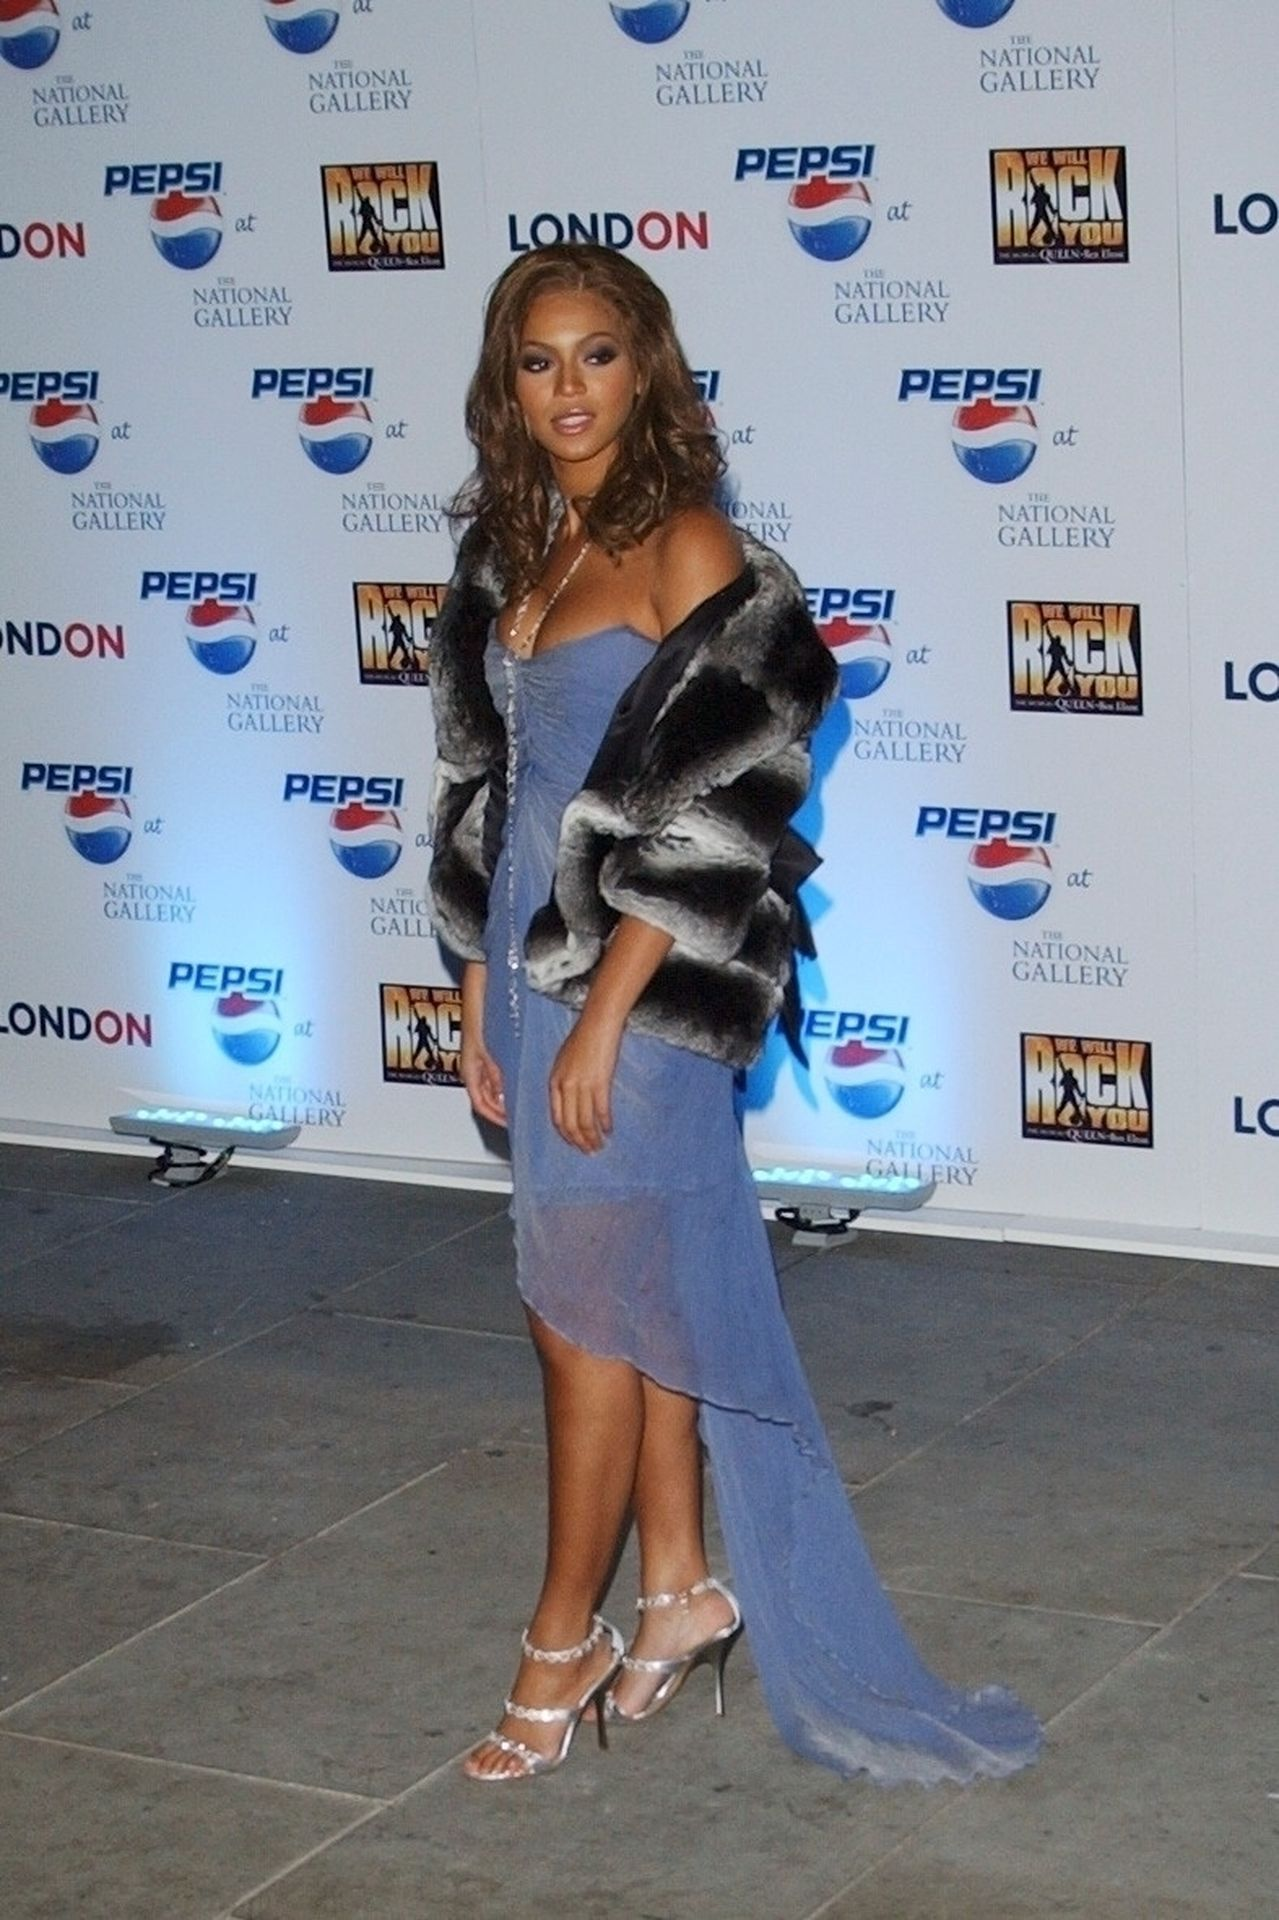 Beyonce Displays Her Cleavage At Pepsi Event In London 0006